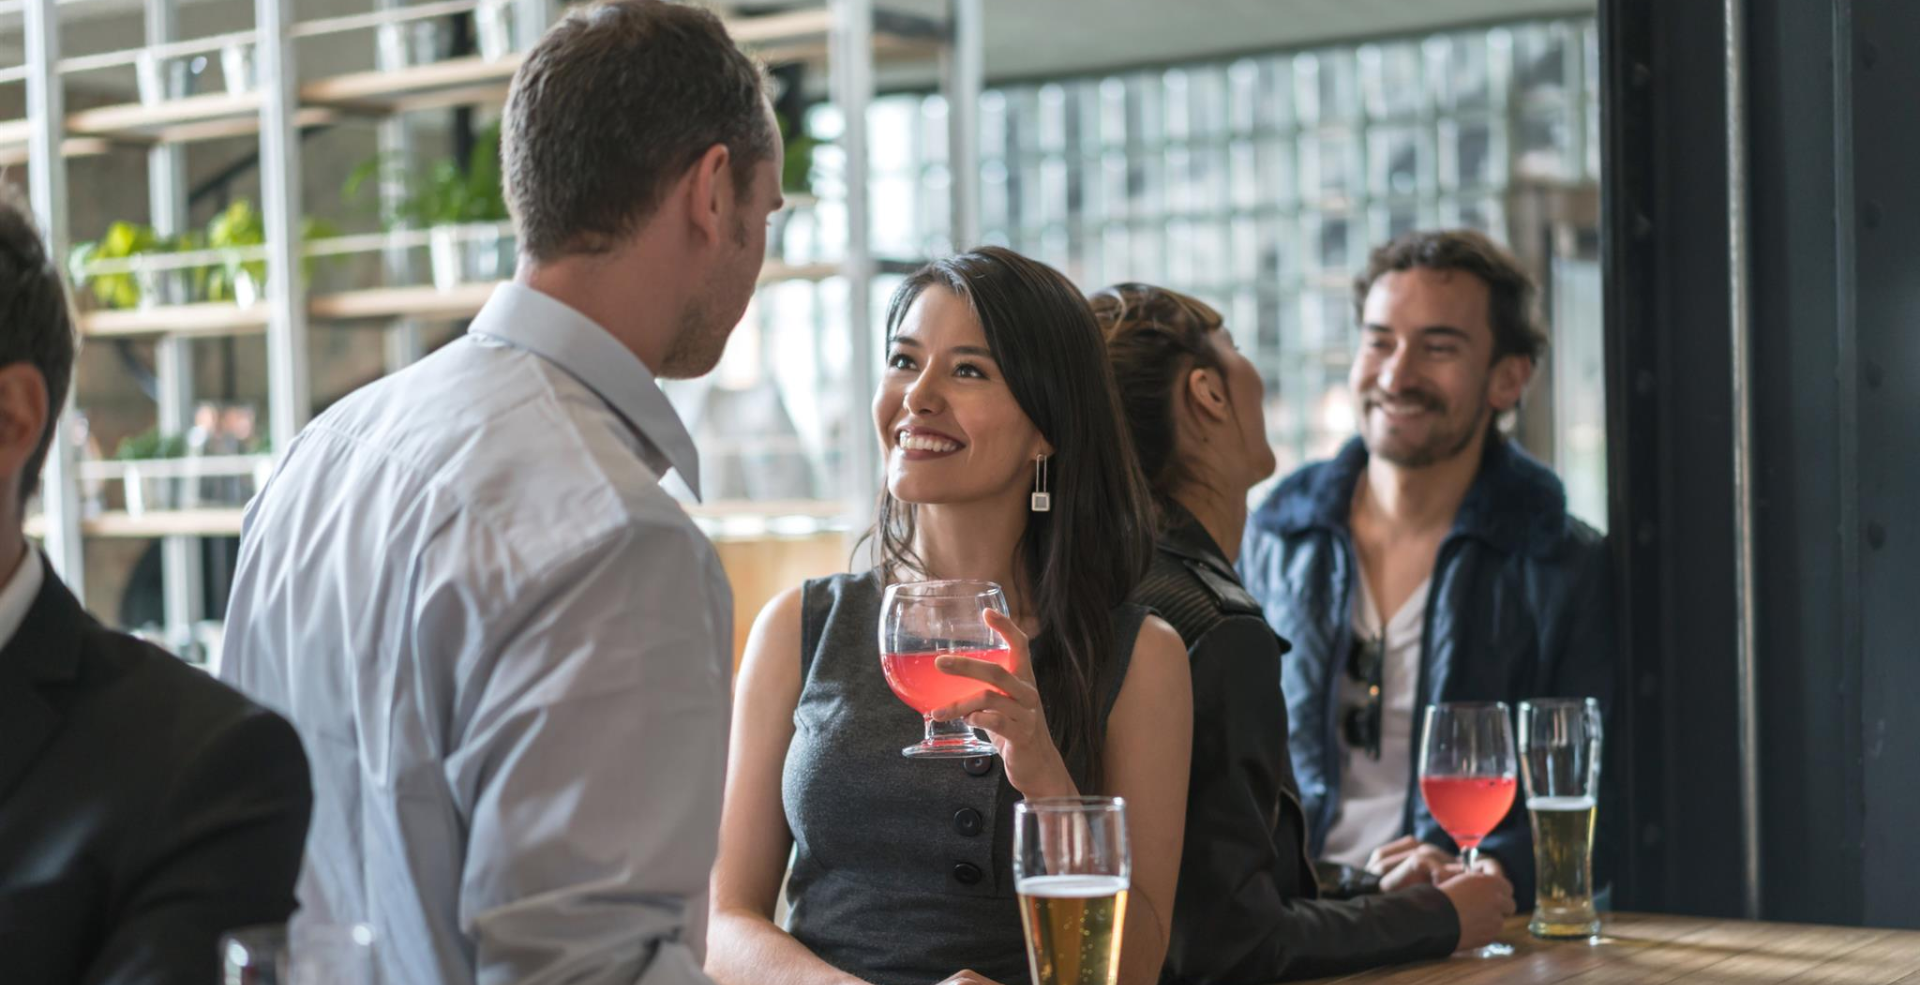 18-30 speed dating manchester